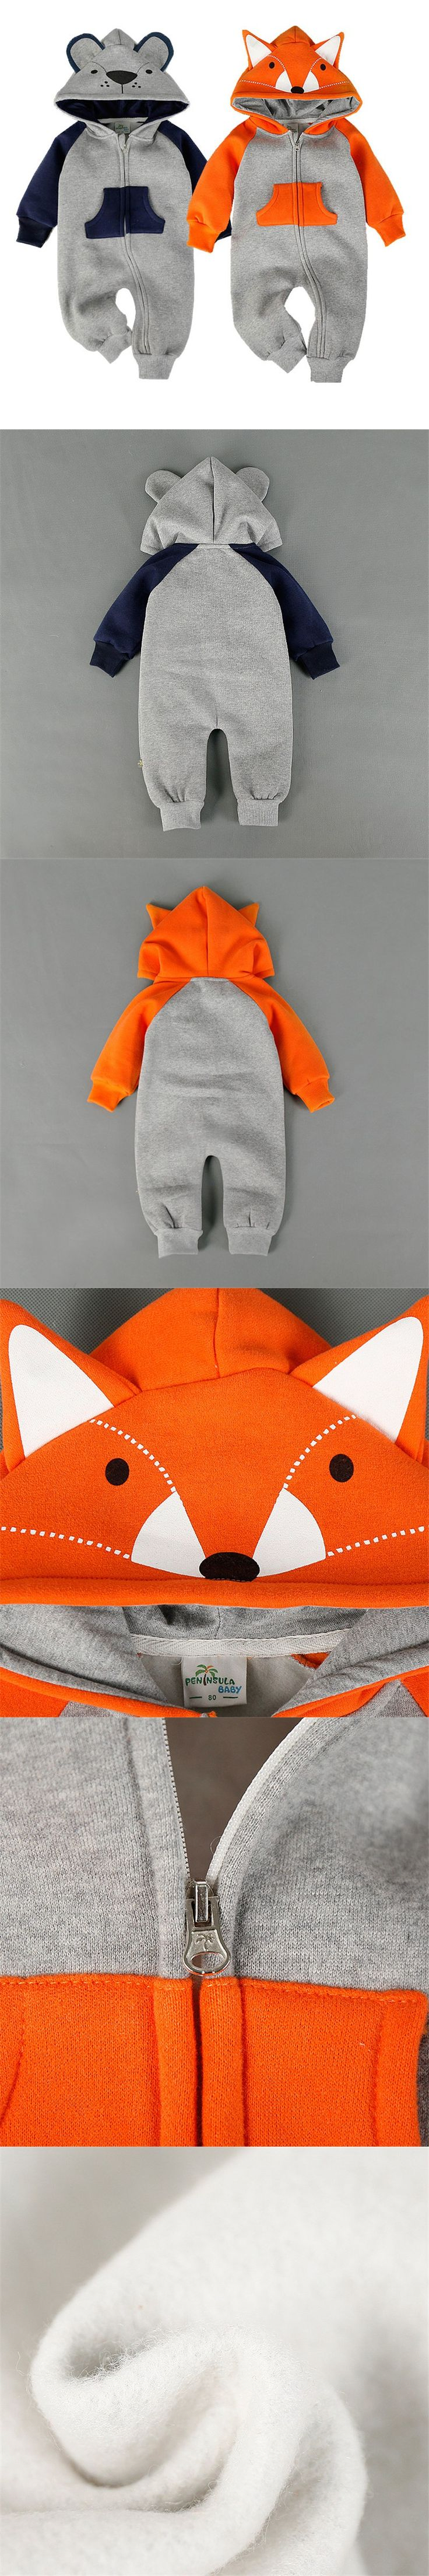 New Fashion Animal Baby Romper Fox Bebe Infant Clothing Baby Boy Girl Clothes Cute Cartoon Bear Winter Warm Jumpsuit Costume $12.99